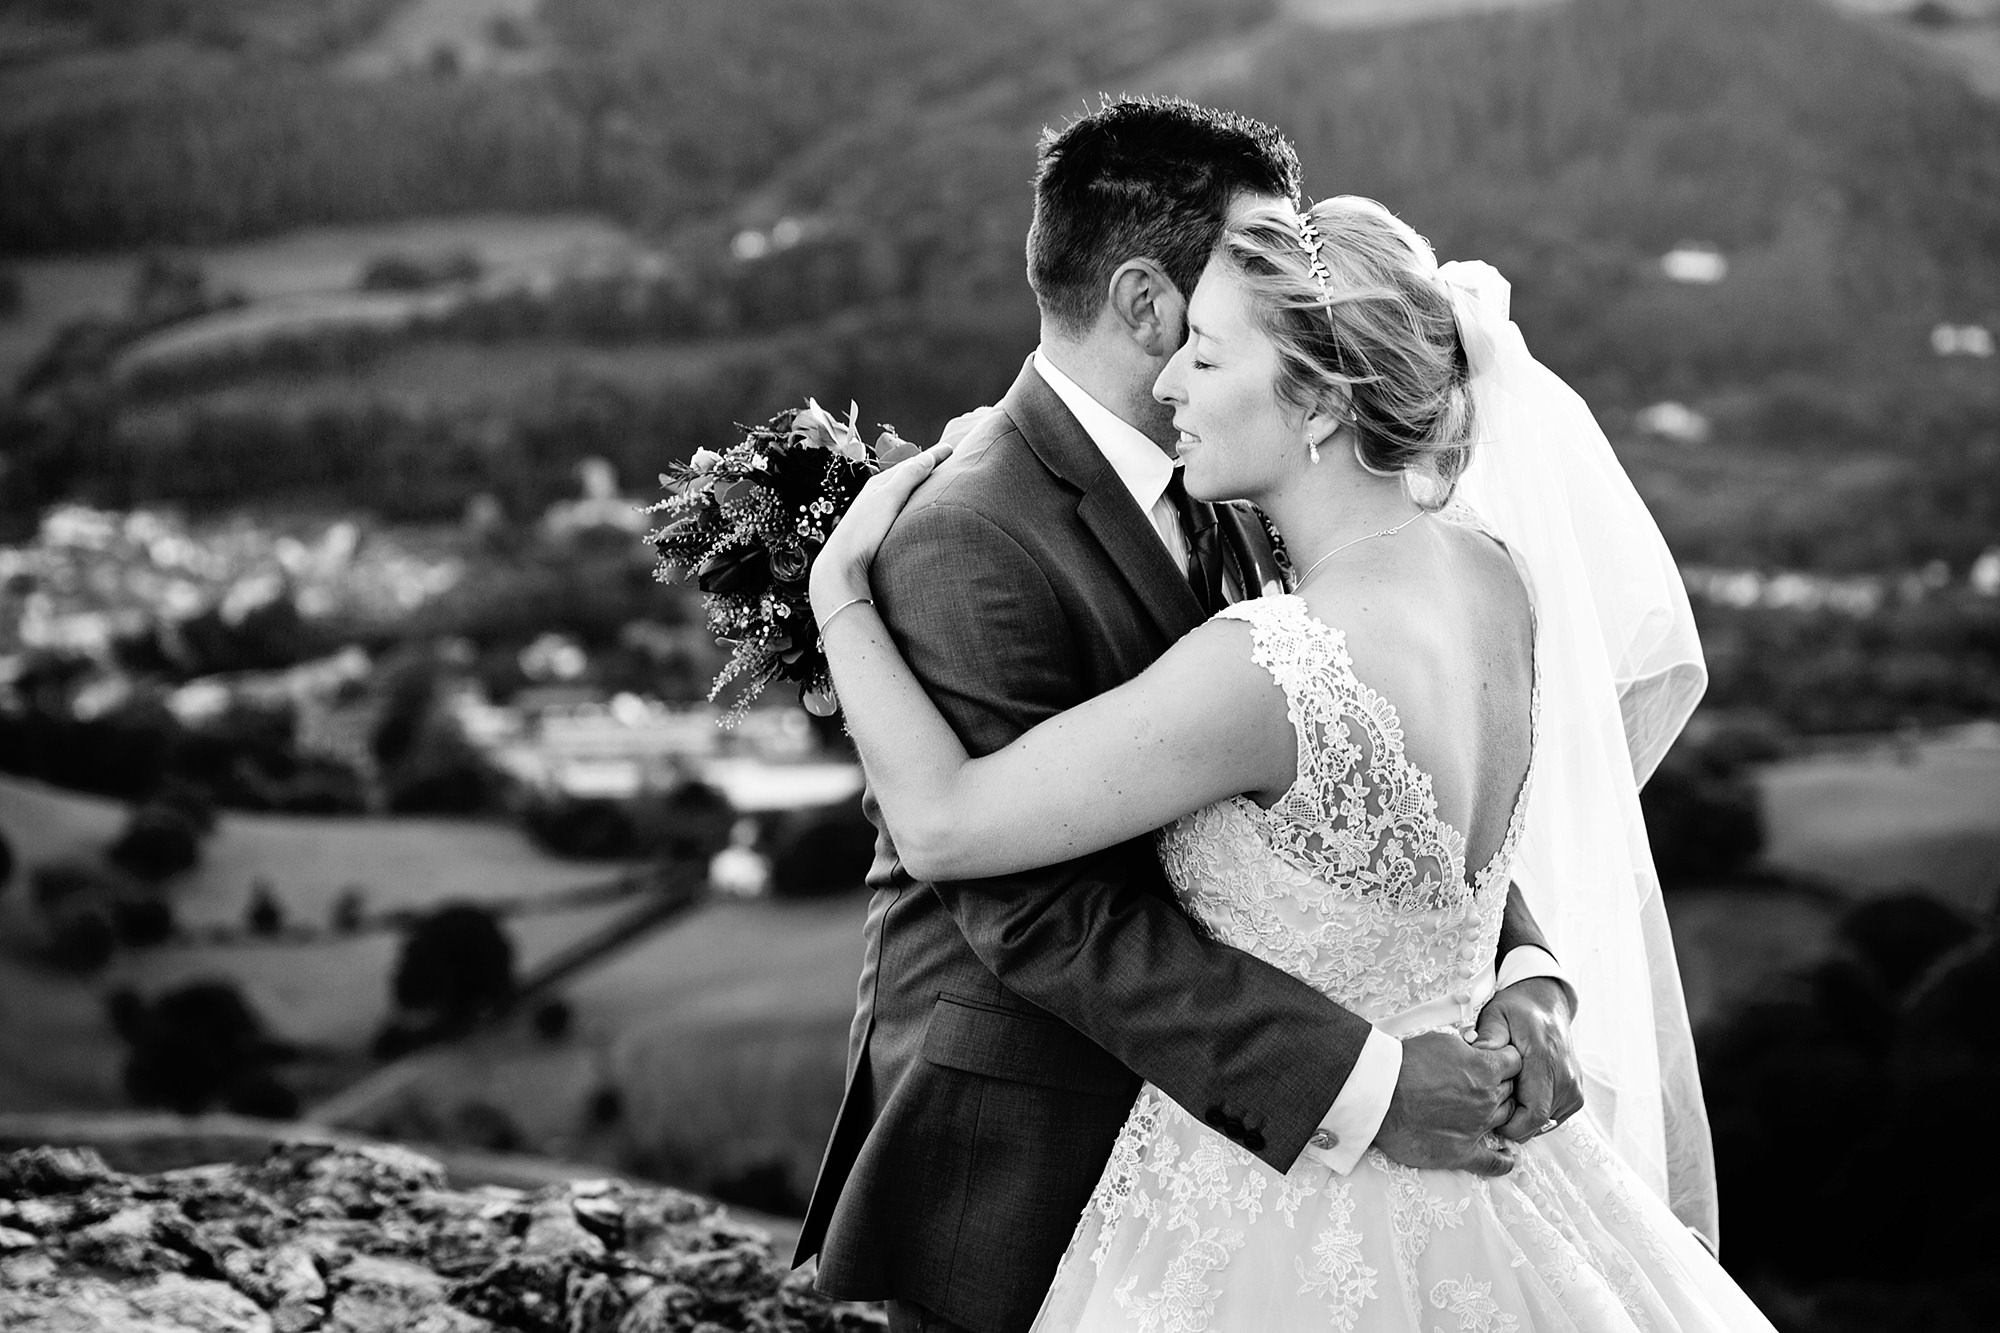 Castell dinas bran wedding photography portrait of bride and groom hugging